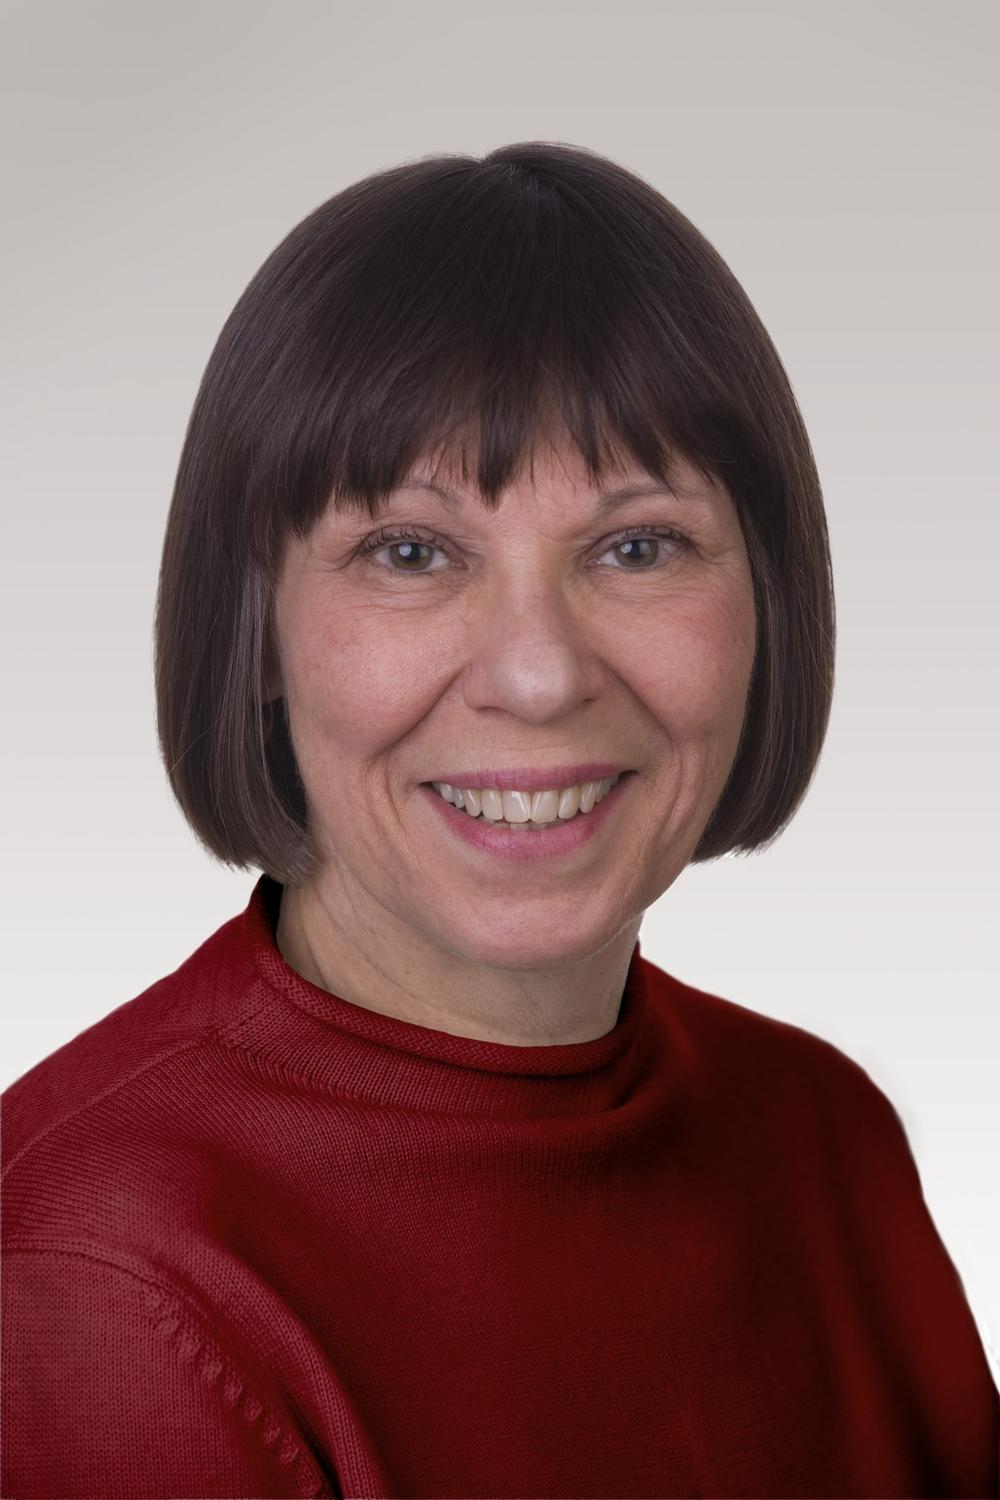 Dianne Luby, longtime head of the Planned Parenthood League of Massachusetts